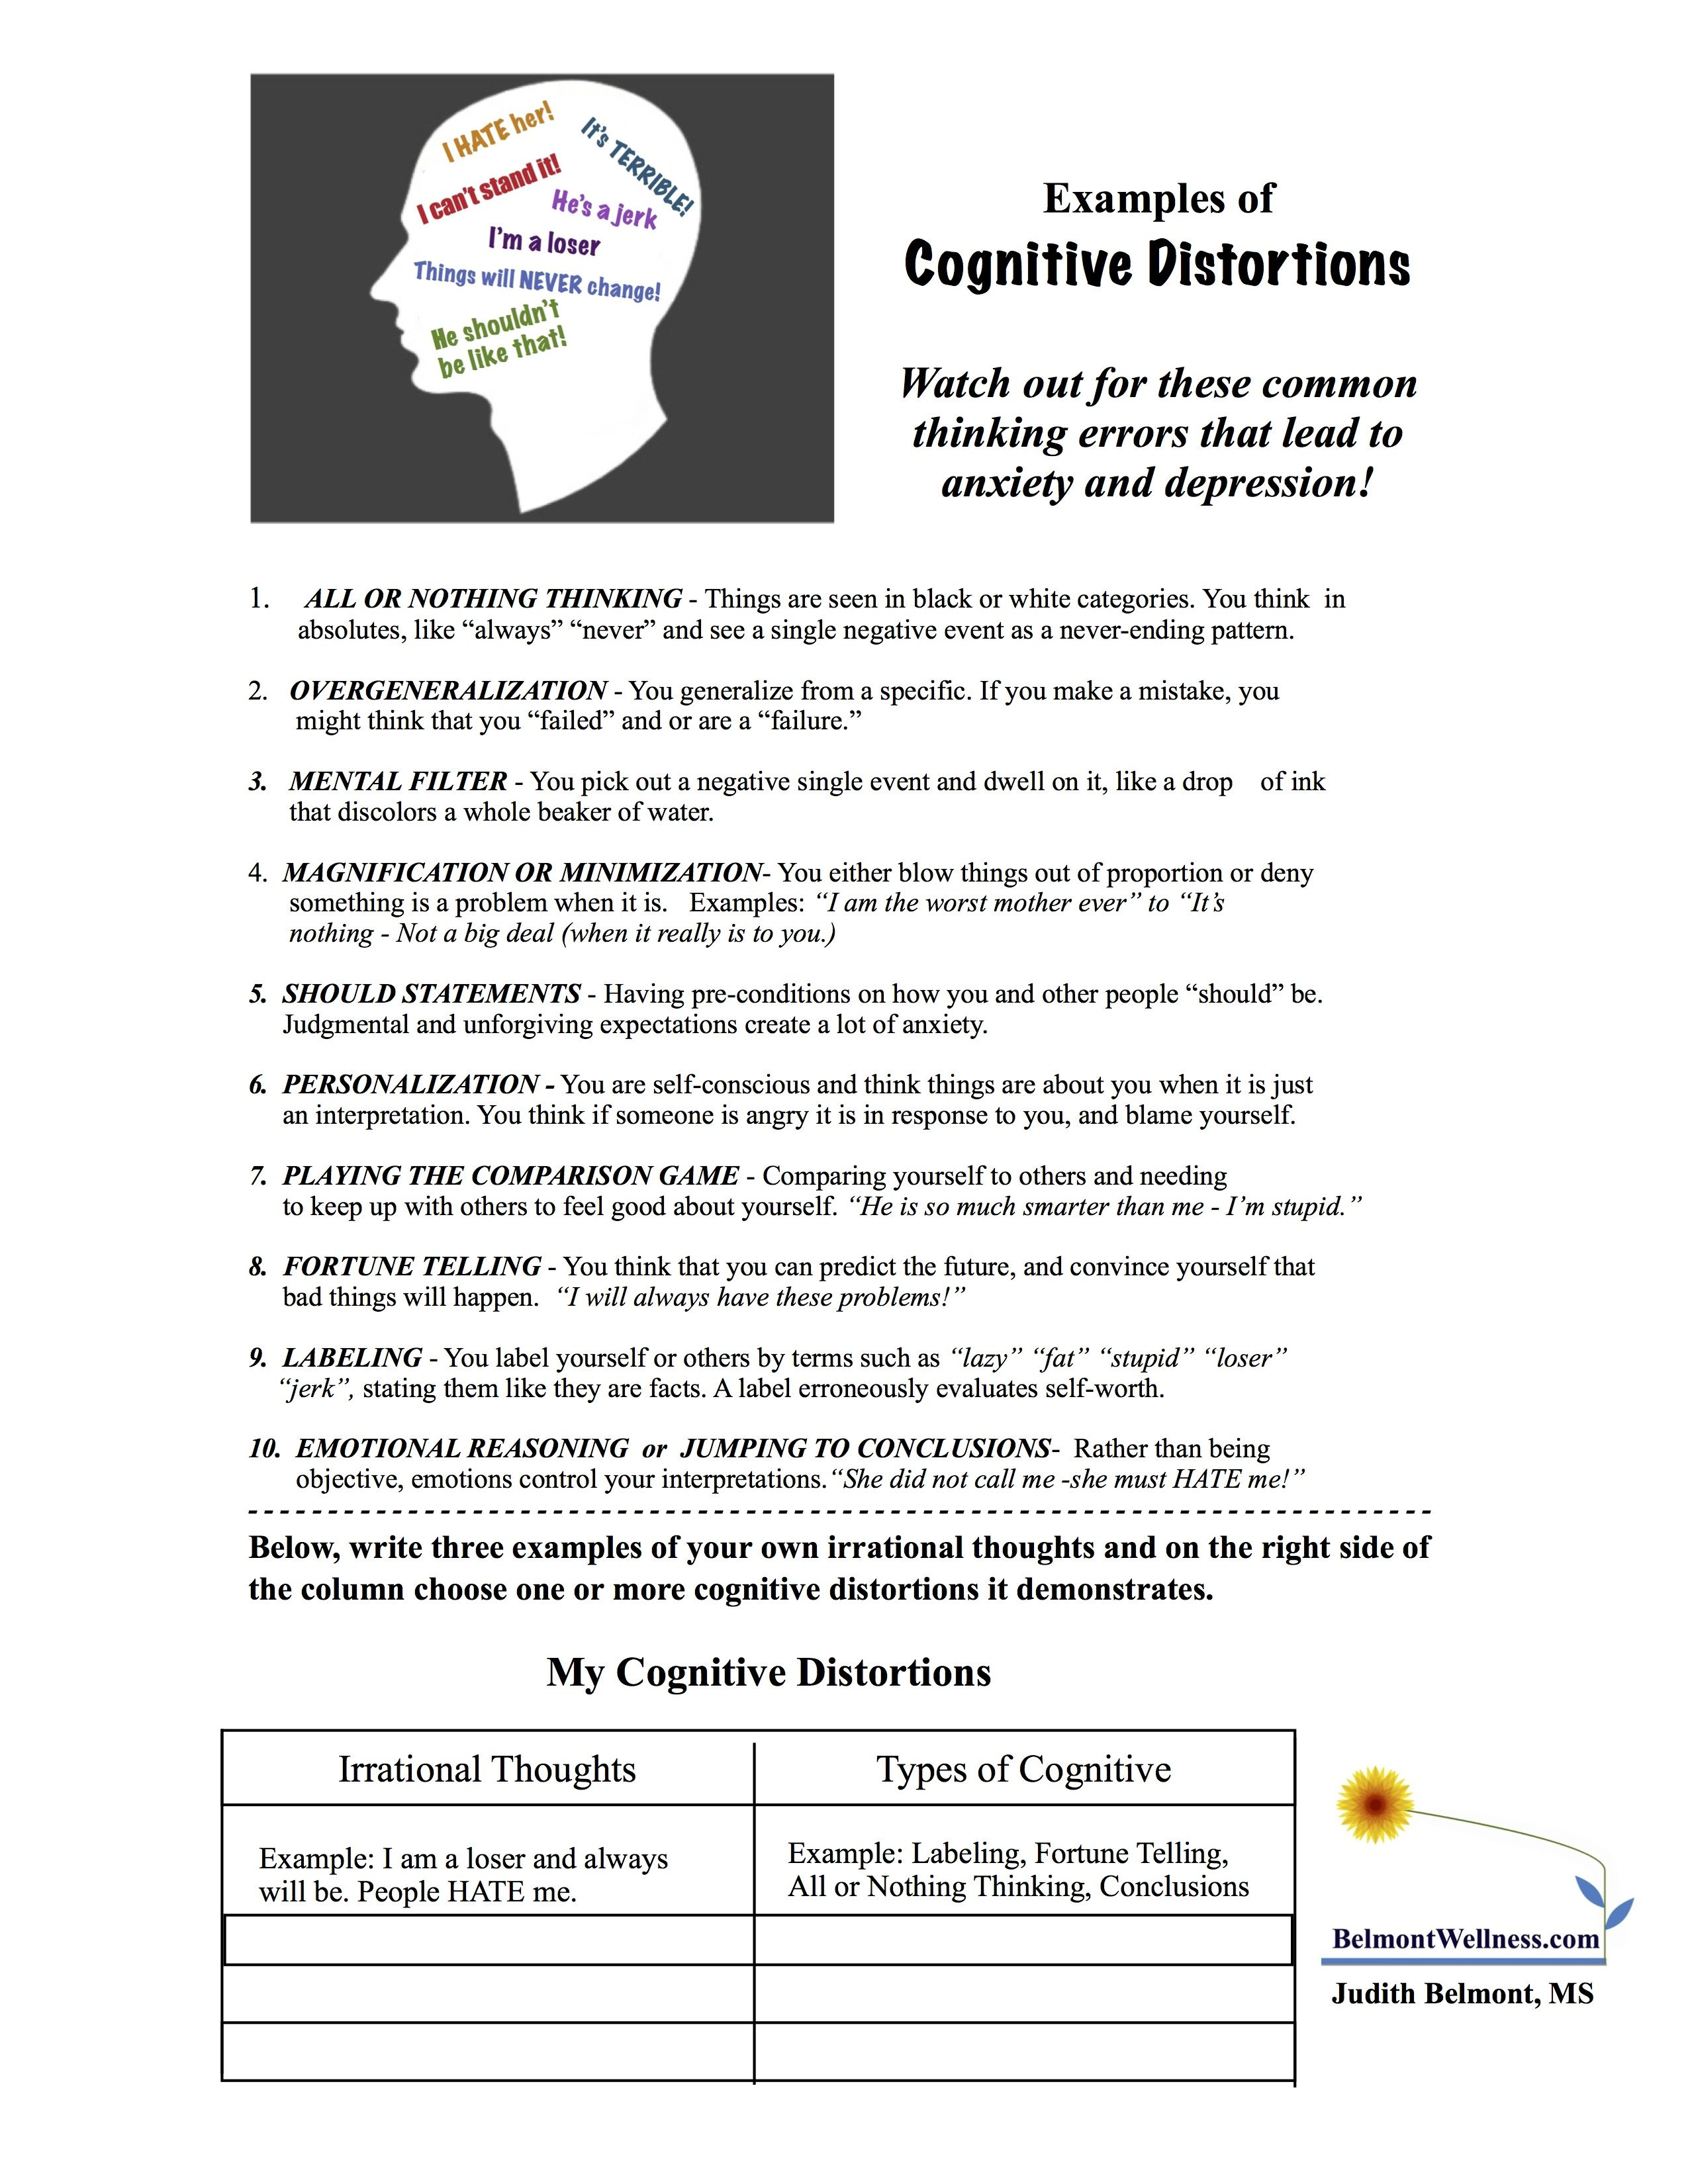 Watch Out For Those Cognitive Distortions For More Free Mental Health Handouts Visit Belmont